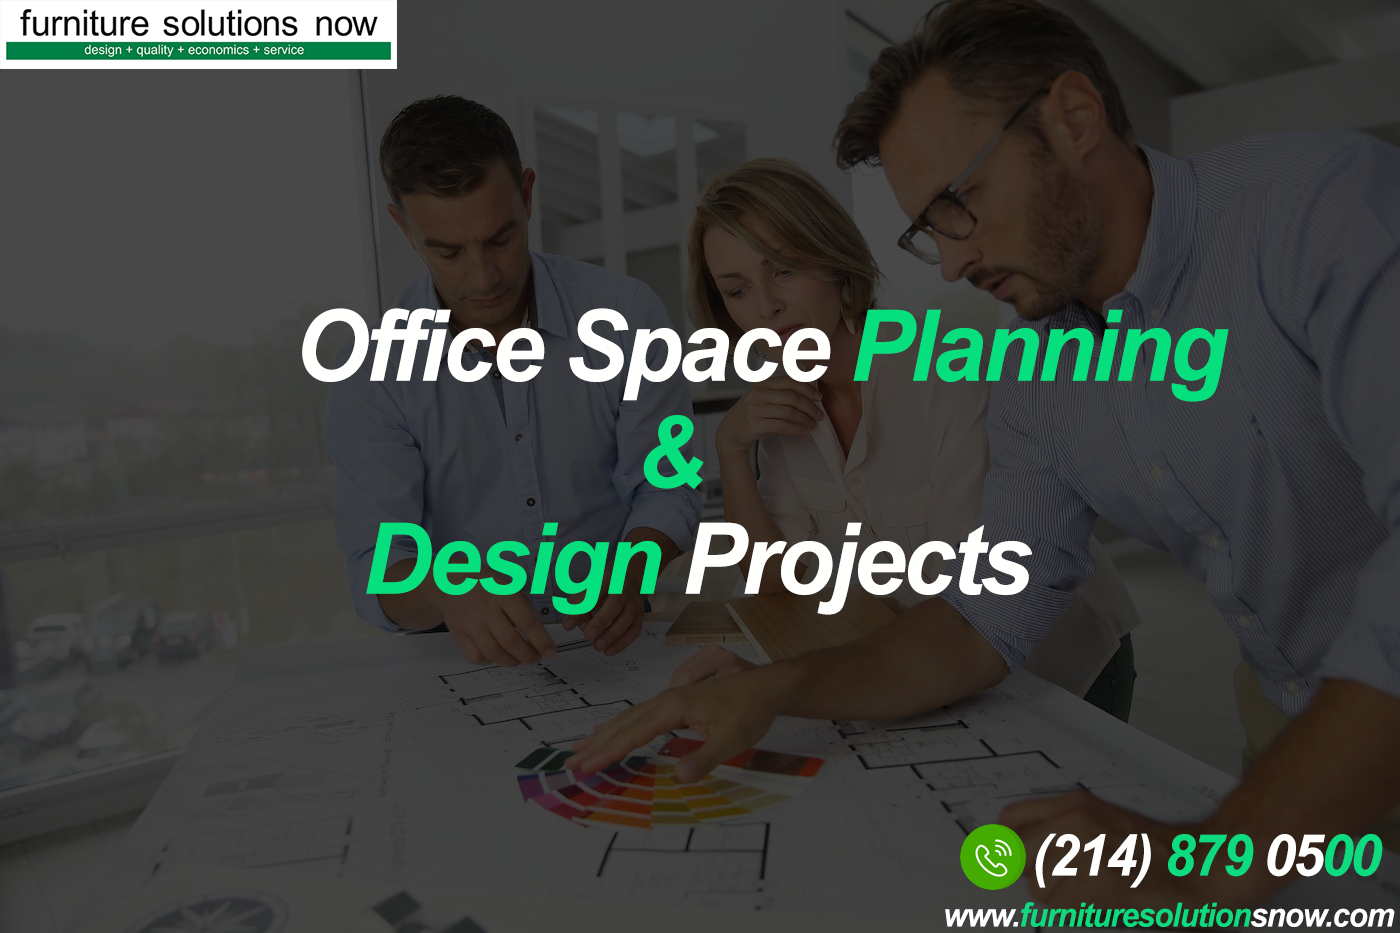 Office Space Planning Design With Images Office Space Planning Space Planning Office Space Design